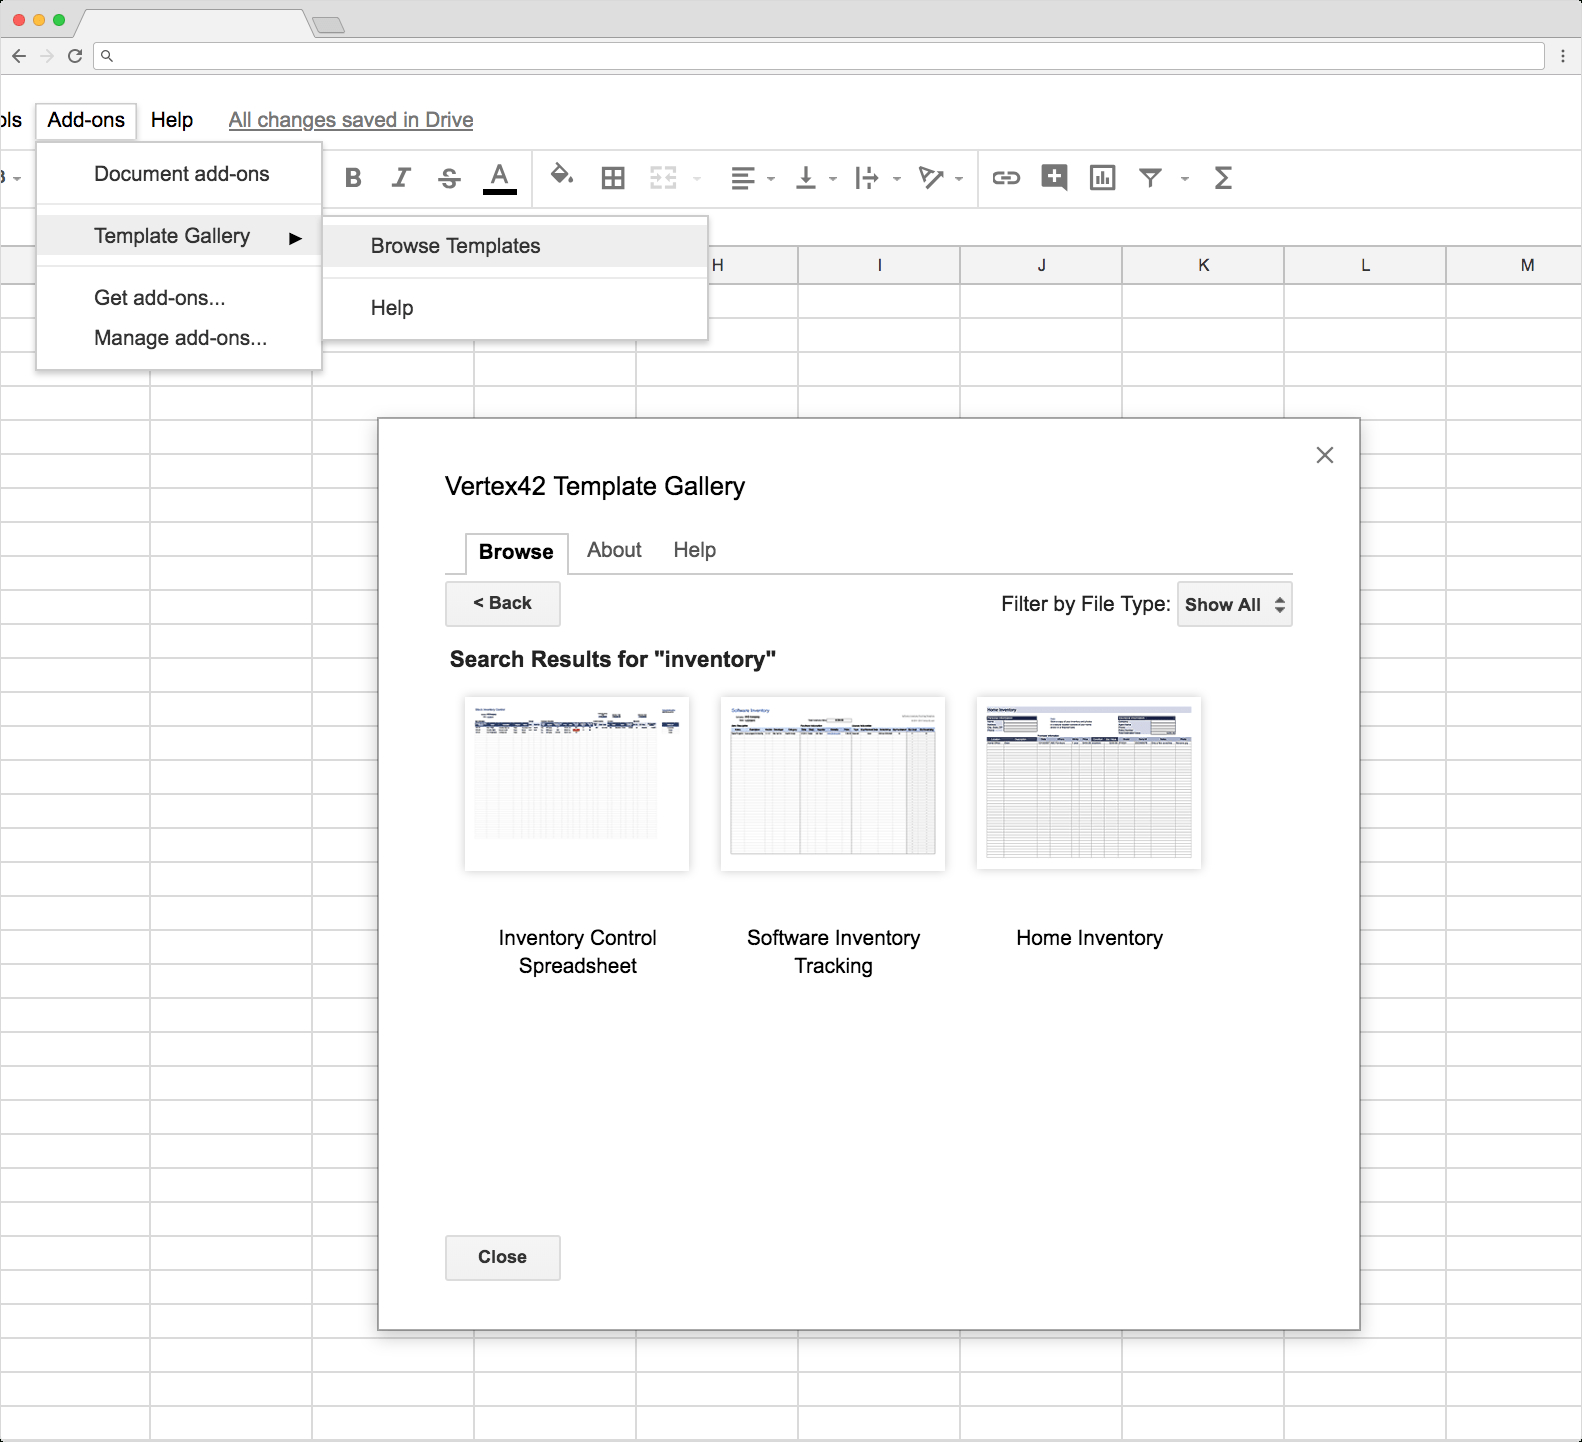 Inventory Management Spreadsheet Template throughout Top 5 Free Google Sheets Inventory Templates · Blog Sheetgo